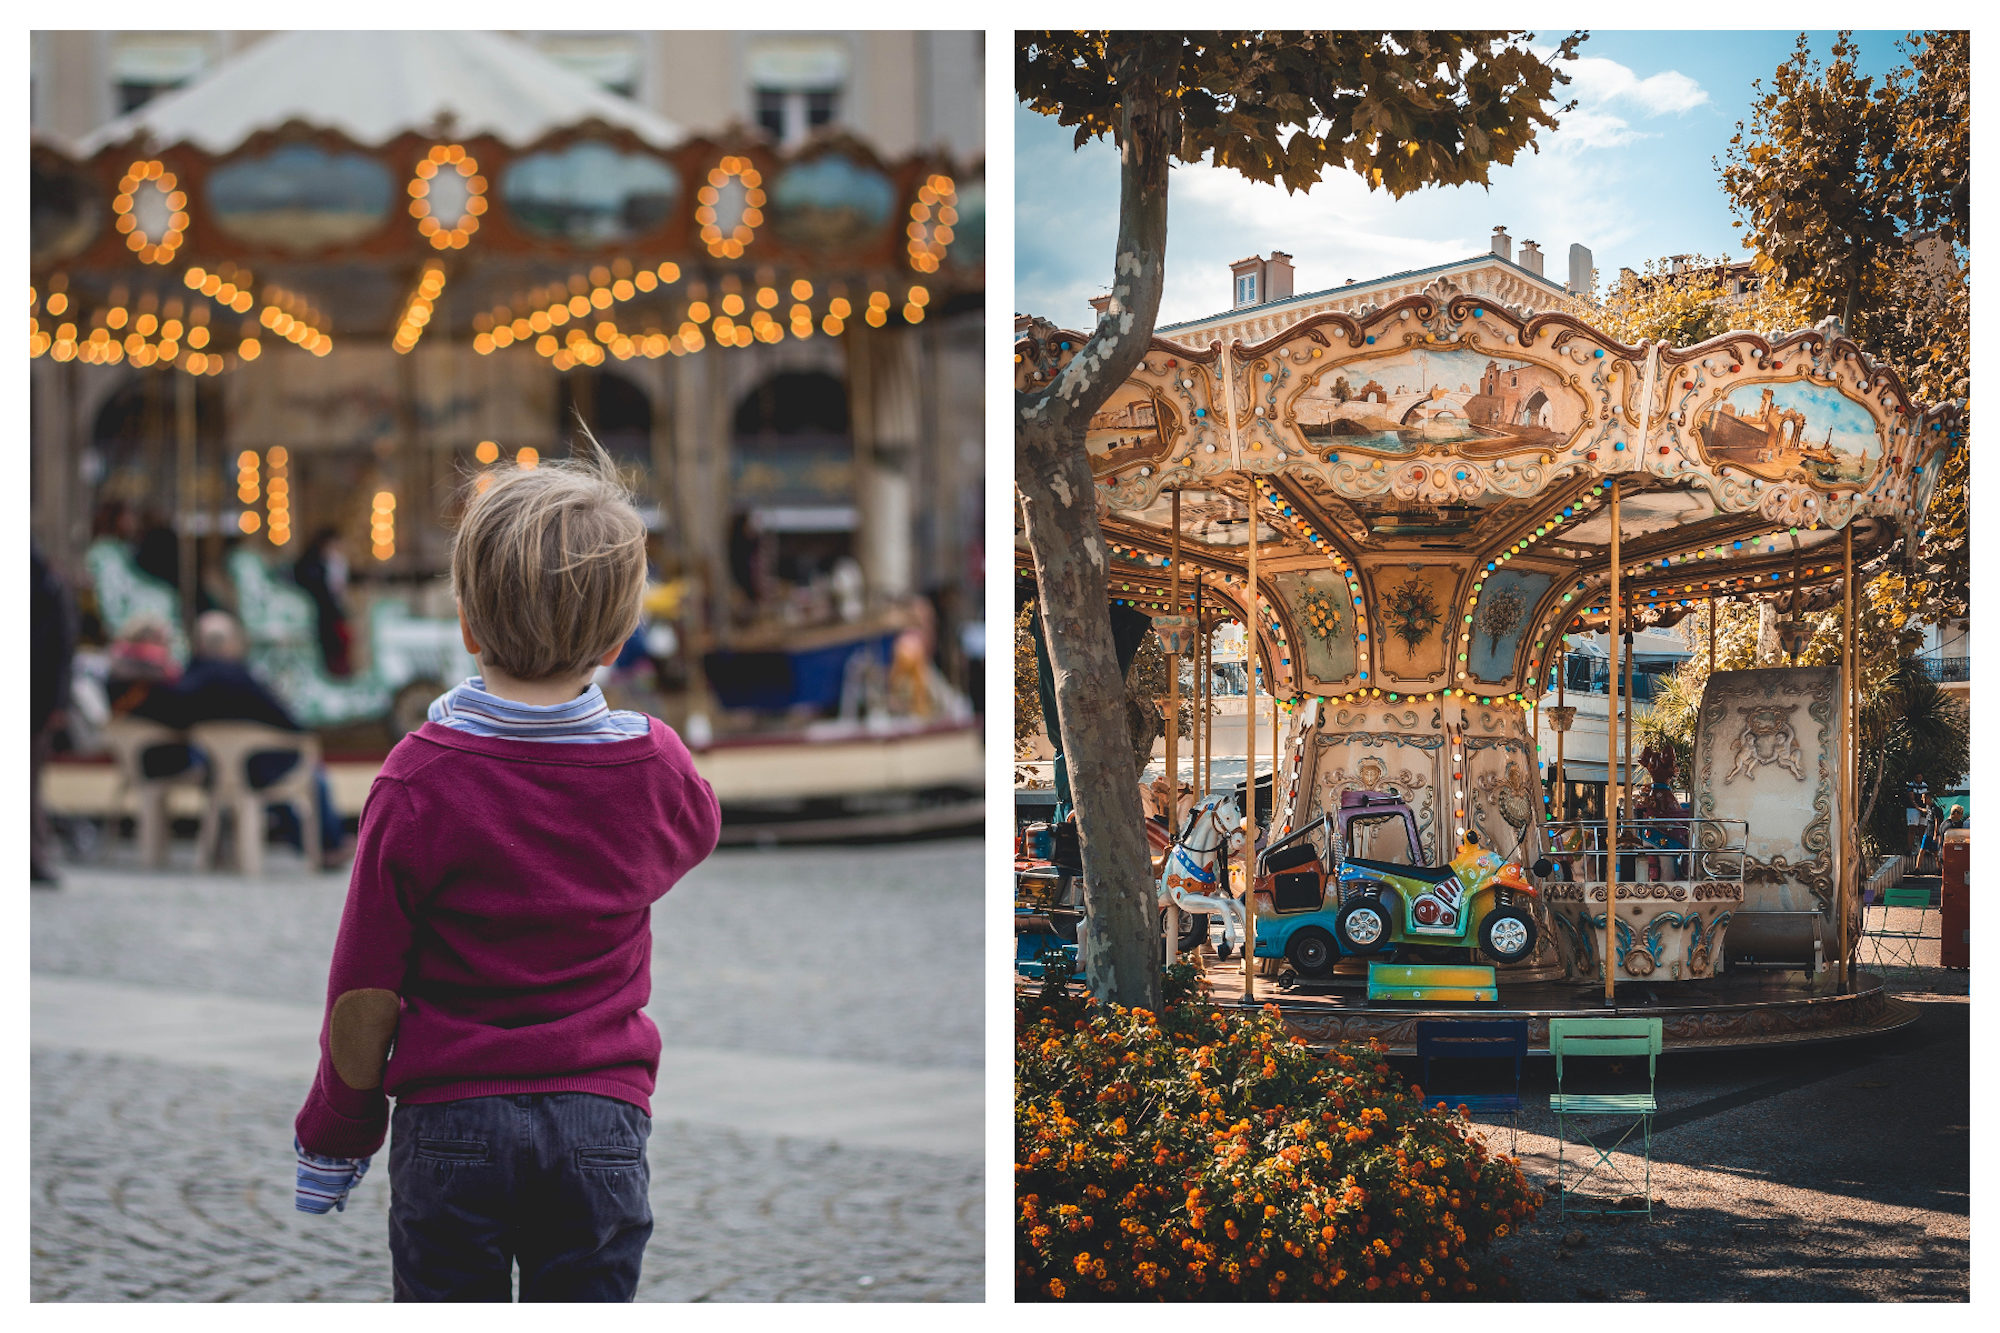 Traveling around Paris with kids includes taking them on one of the traditional merry-go-rounds all lit up, that are dotted around the city.